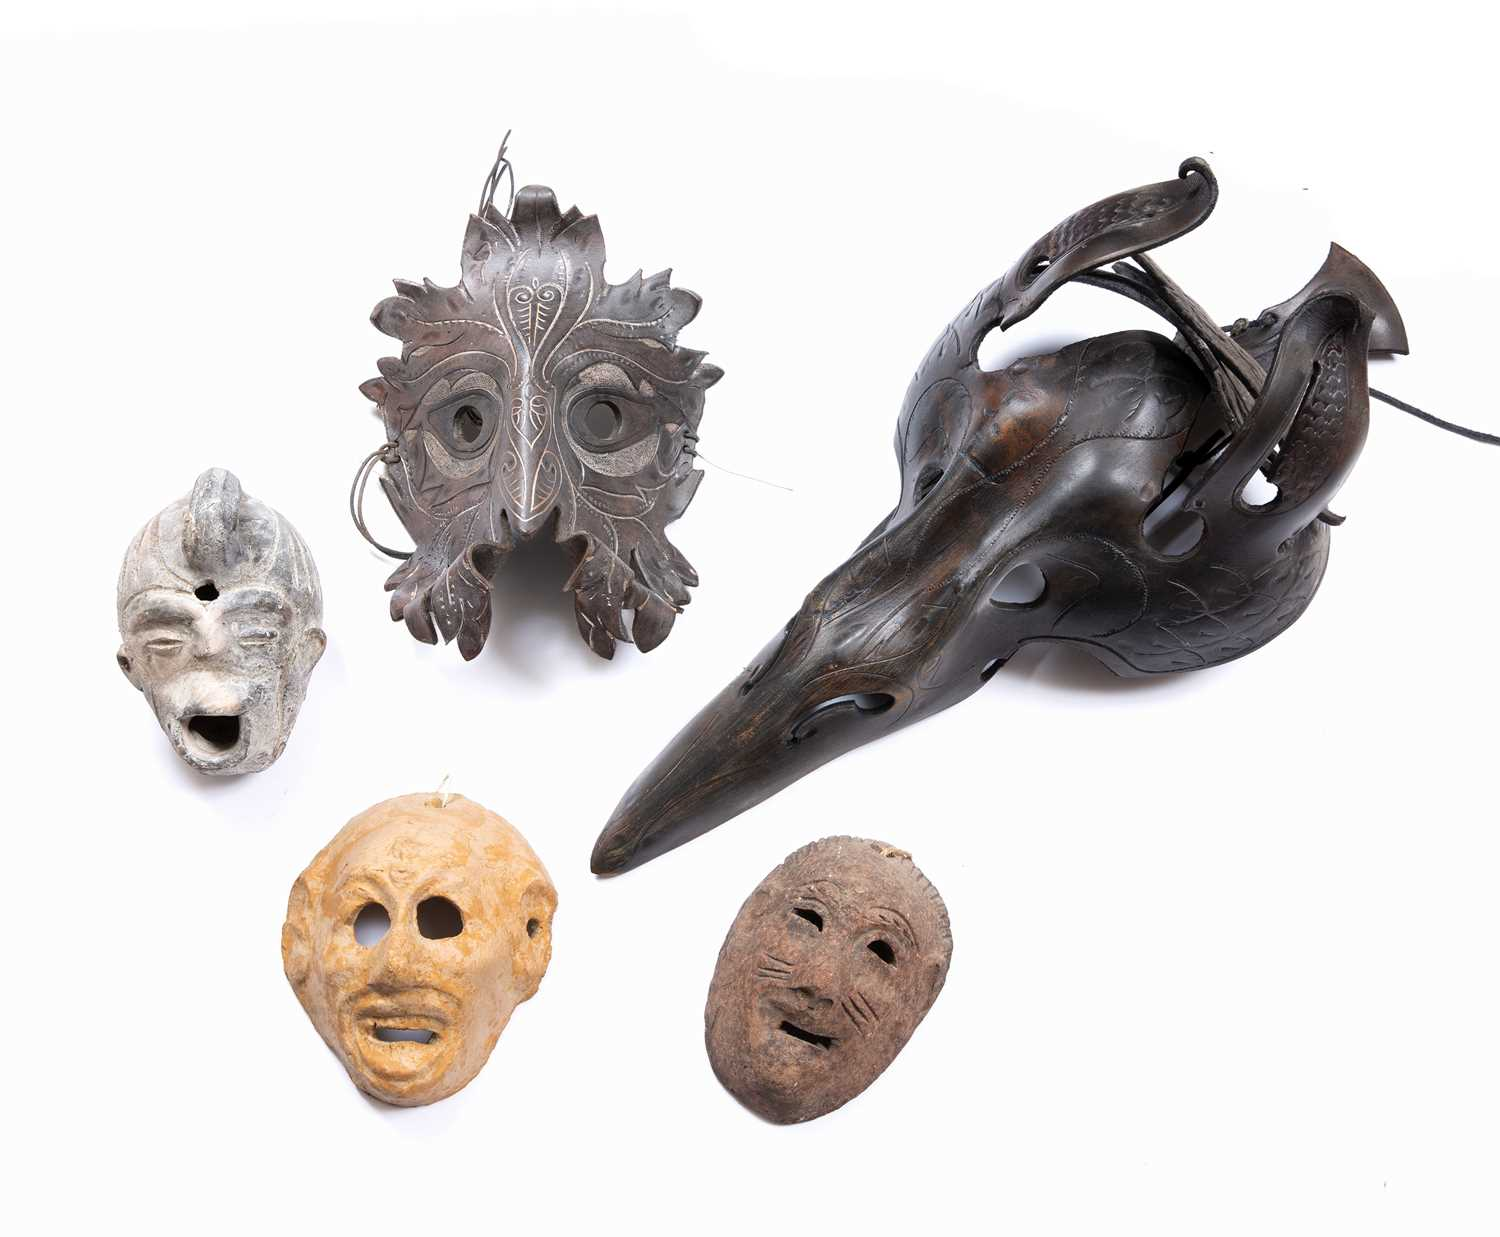 Capp, Justin - A leather 'Green Man' mask, another of horse like creature form, two pottery face